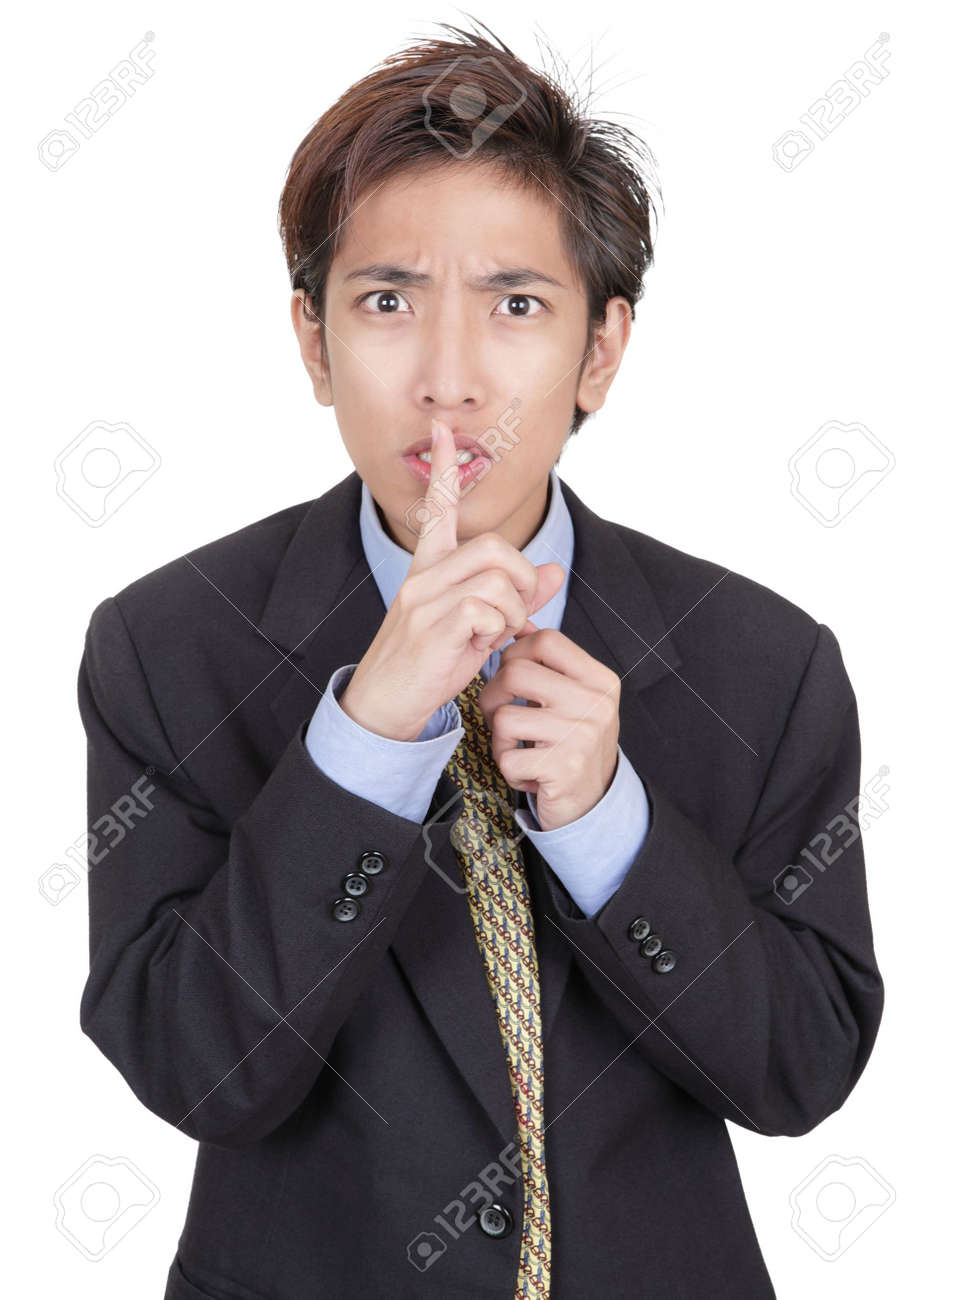 Young Chinese businessman hushing with fingers on lips and a mesmerizing urging gaze insisting on discretion and secrecy. Isolated over white. Stock Photo - 6338890